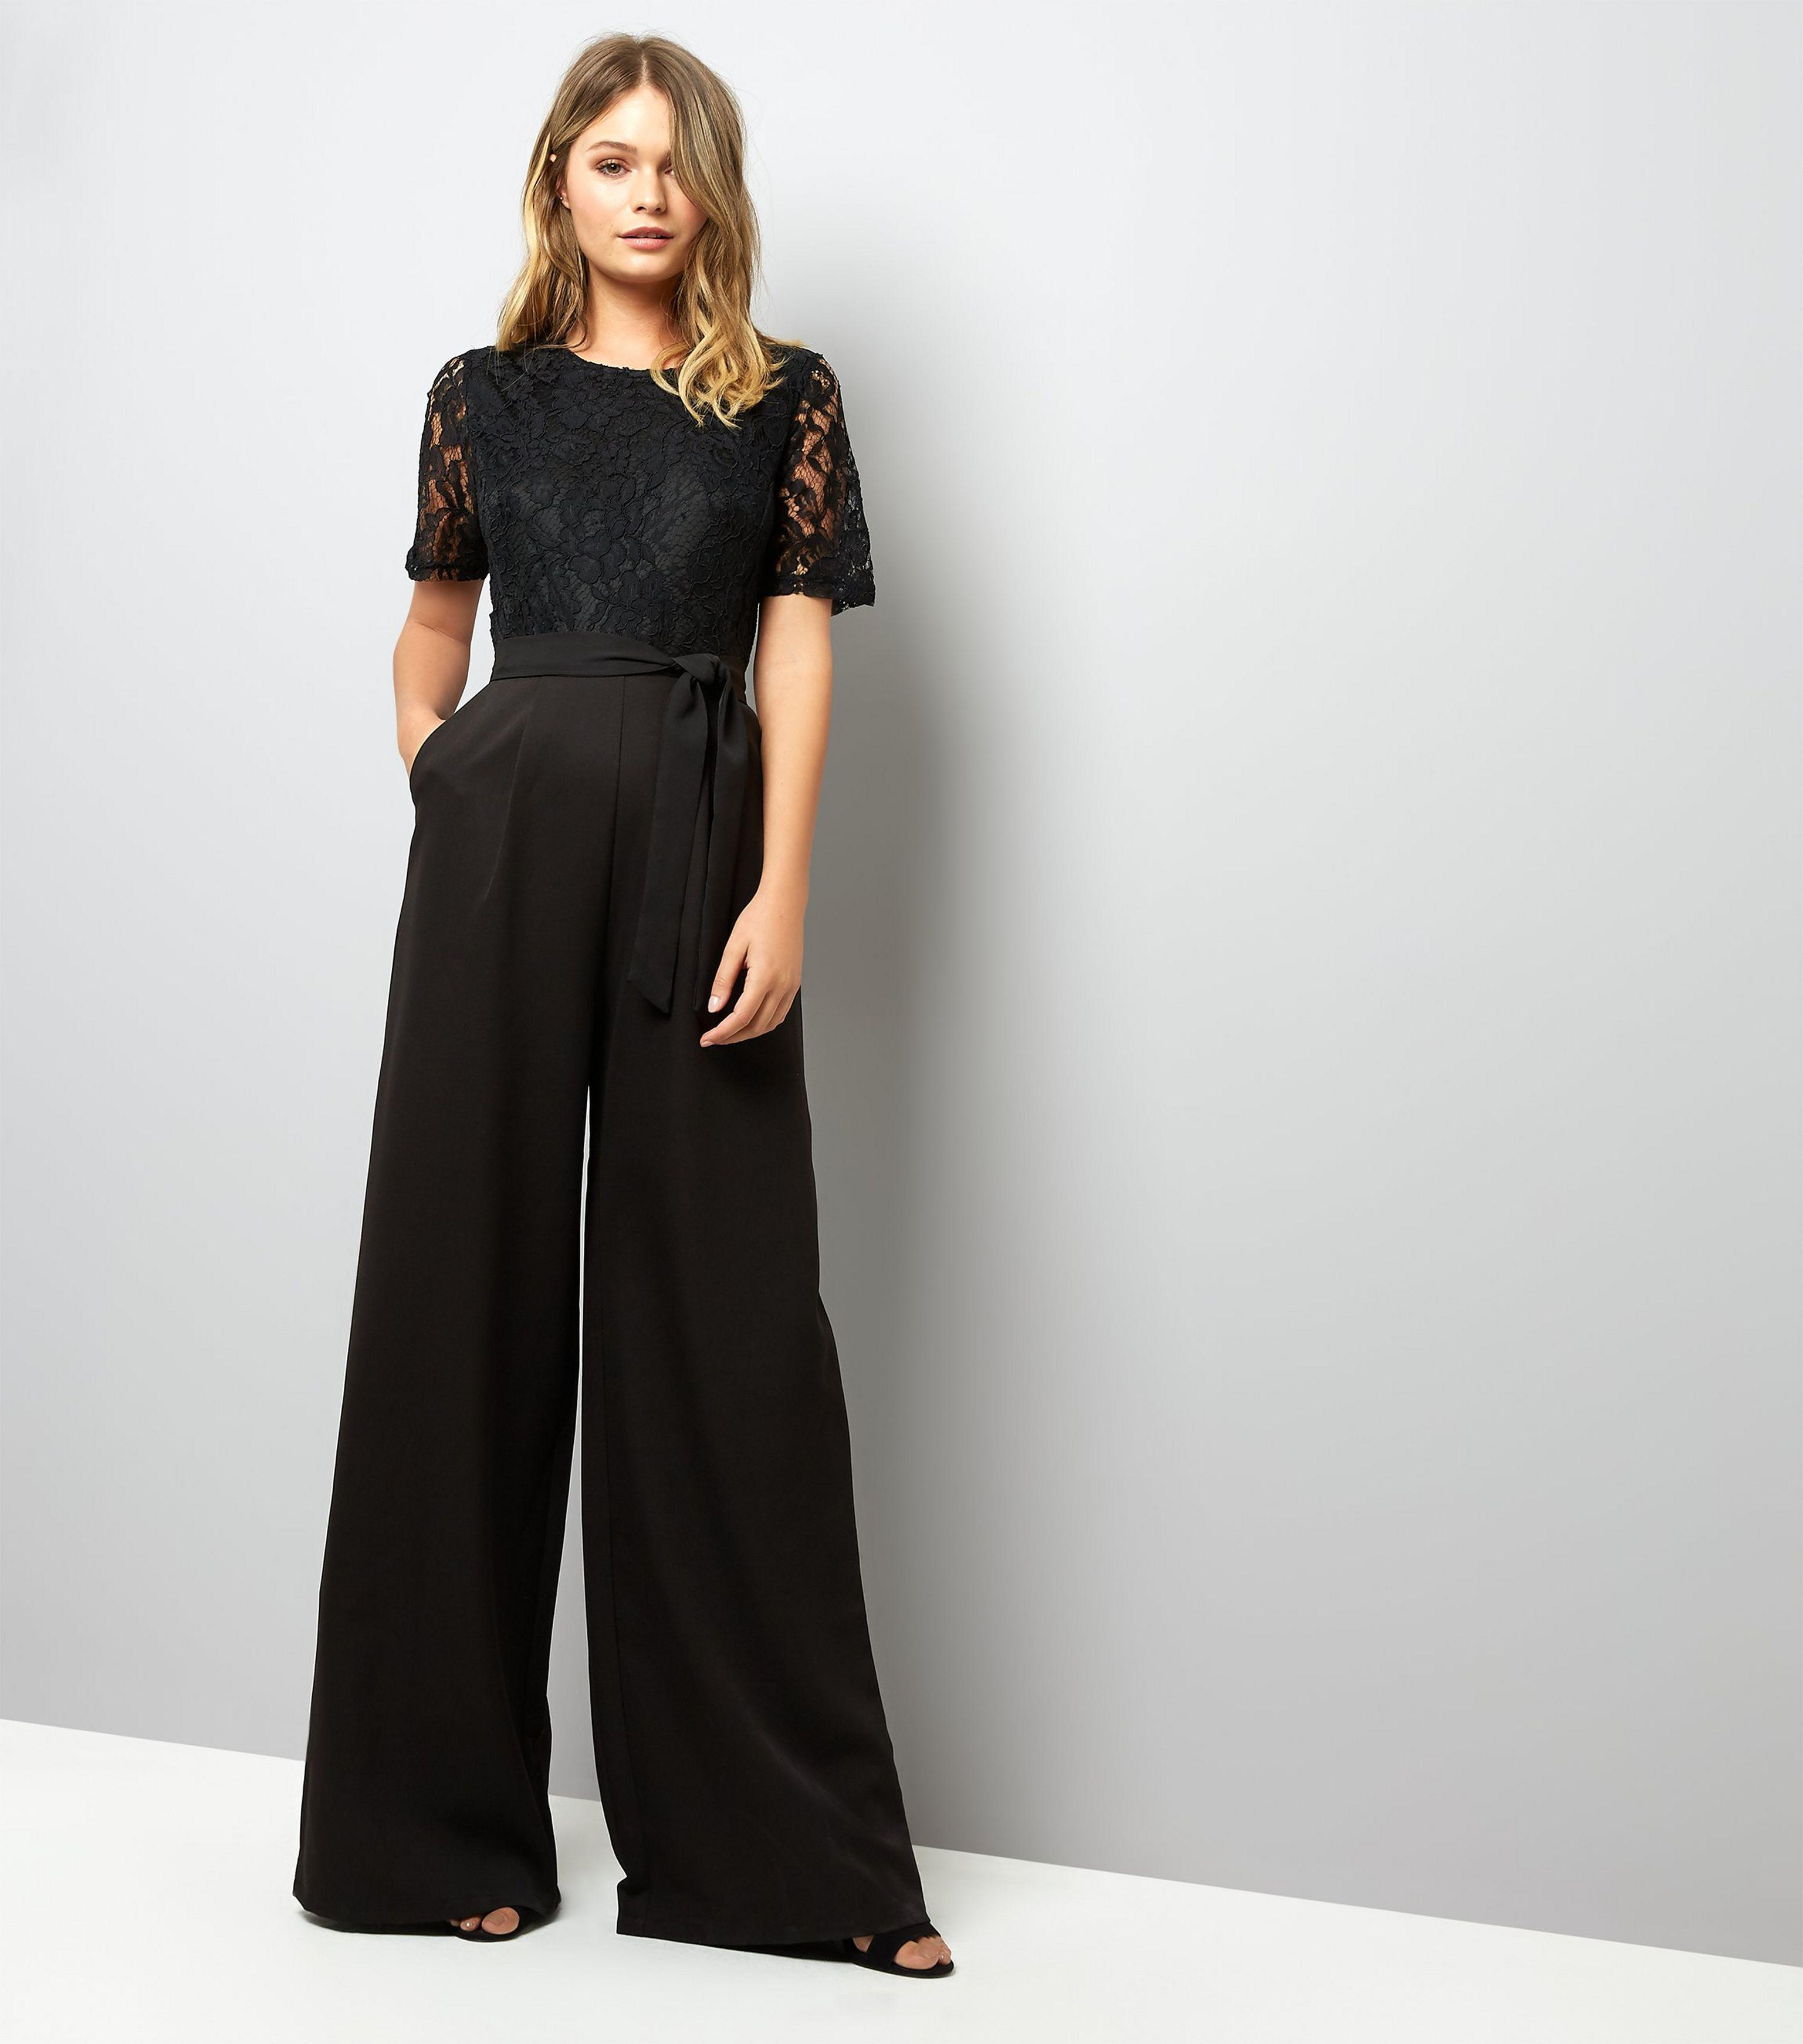 93bff19eea82 Mela Black Lace Top Wide Leg Jumpsuit in Black - Lyst